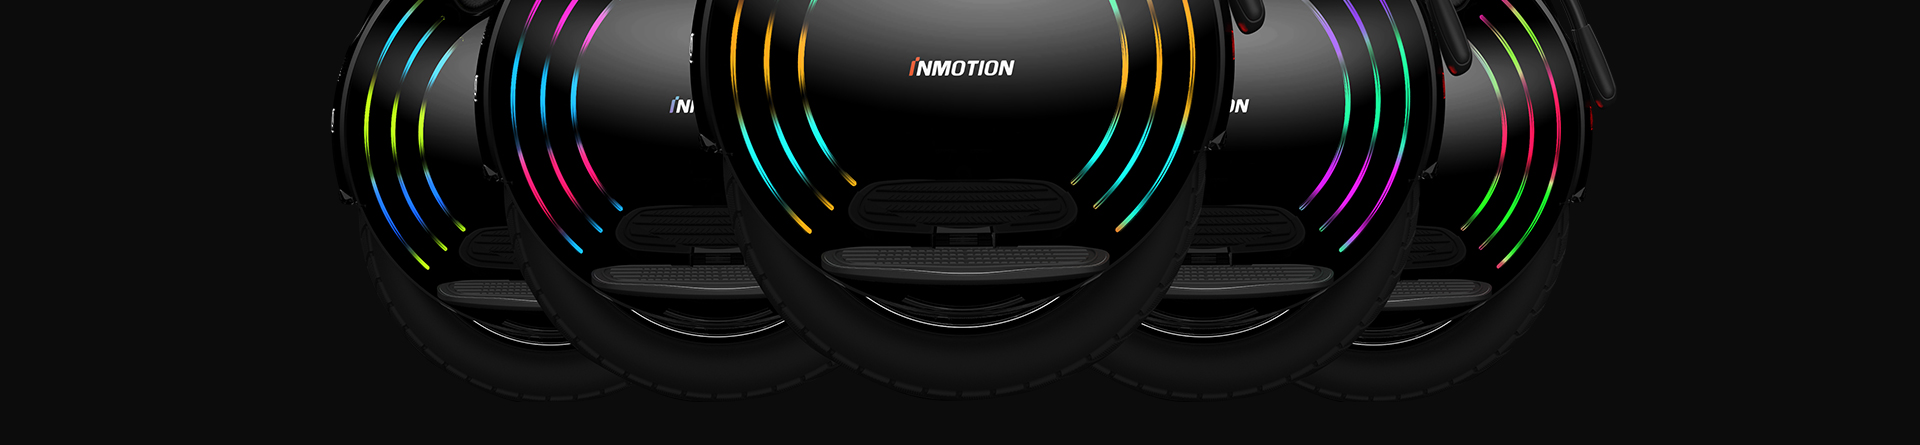 Every V10 is Different, Just Decorate Your Mood and Trip via INMOTION APP